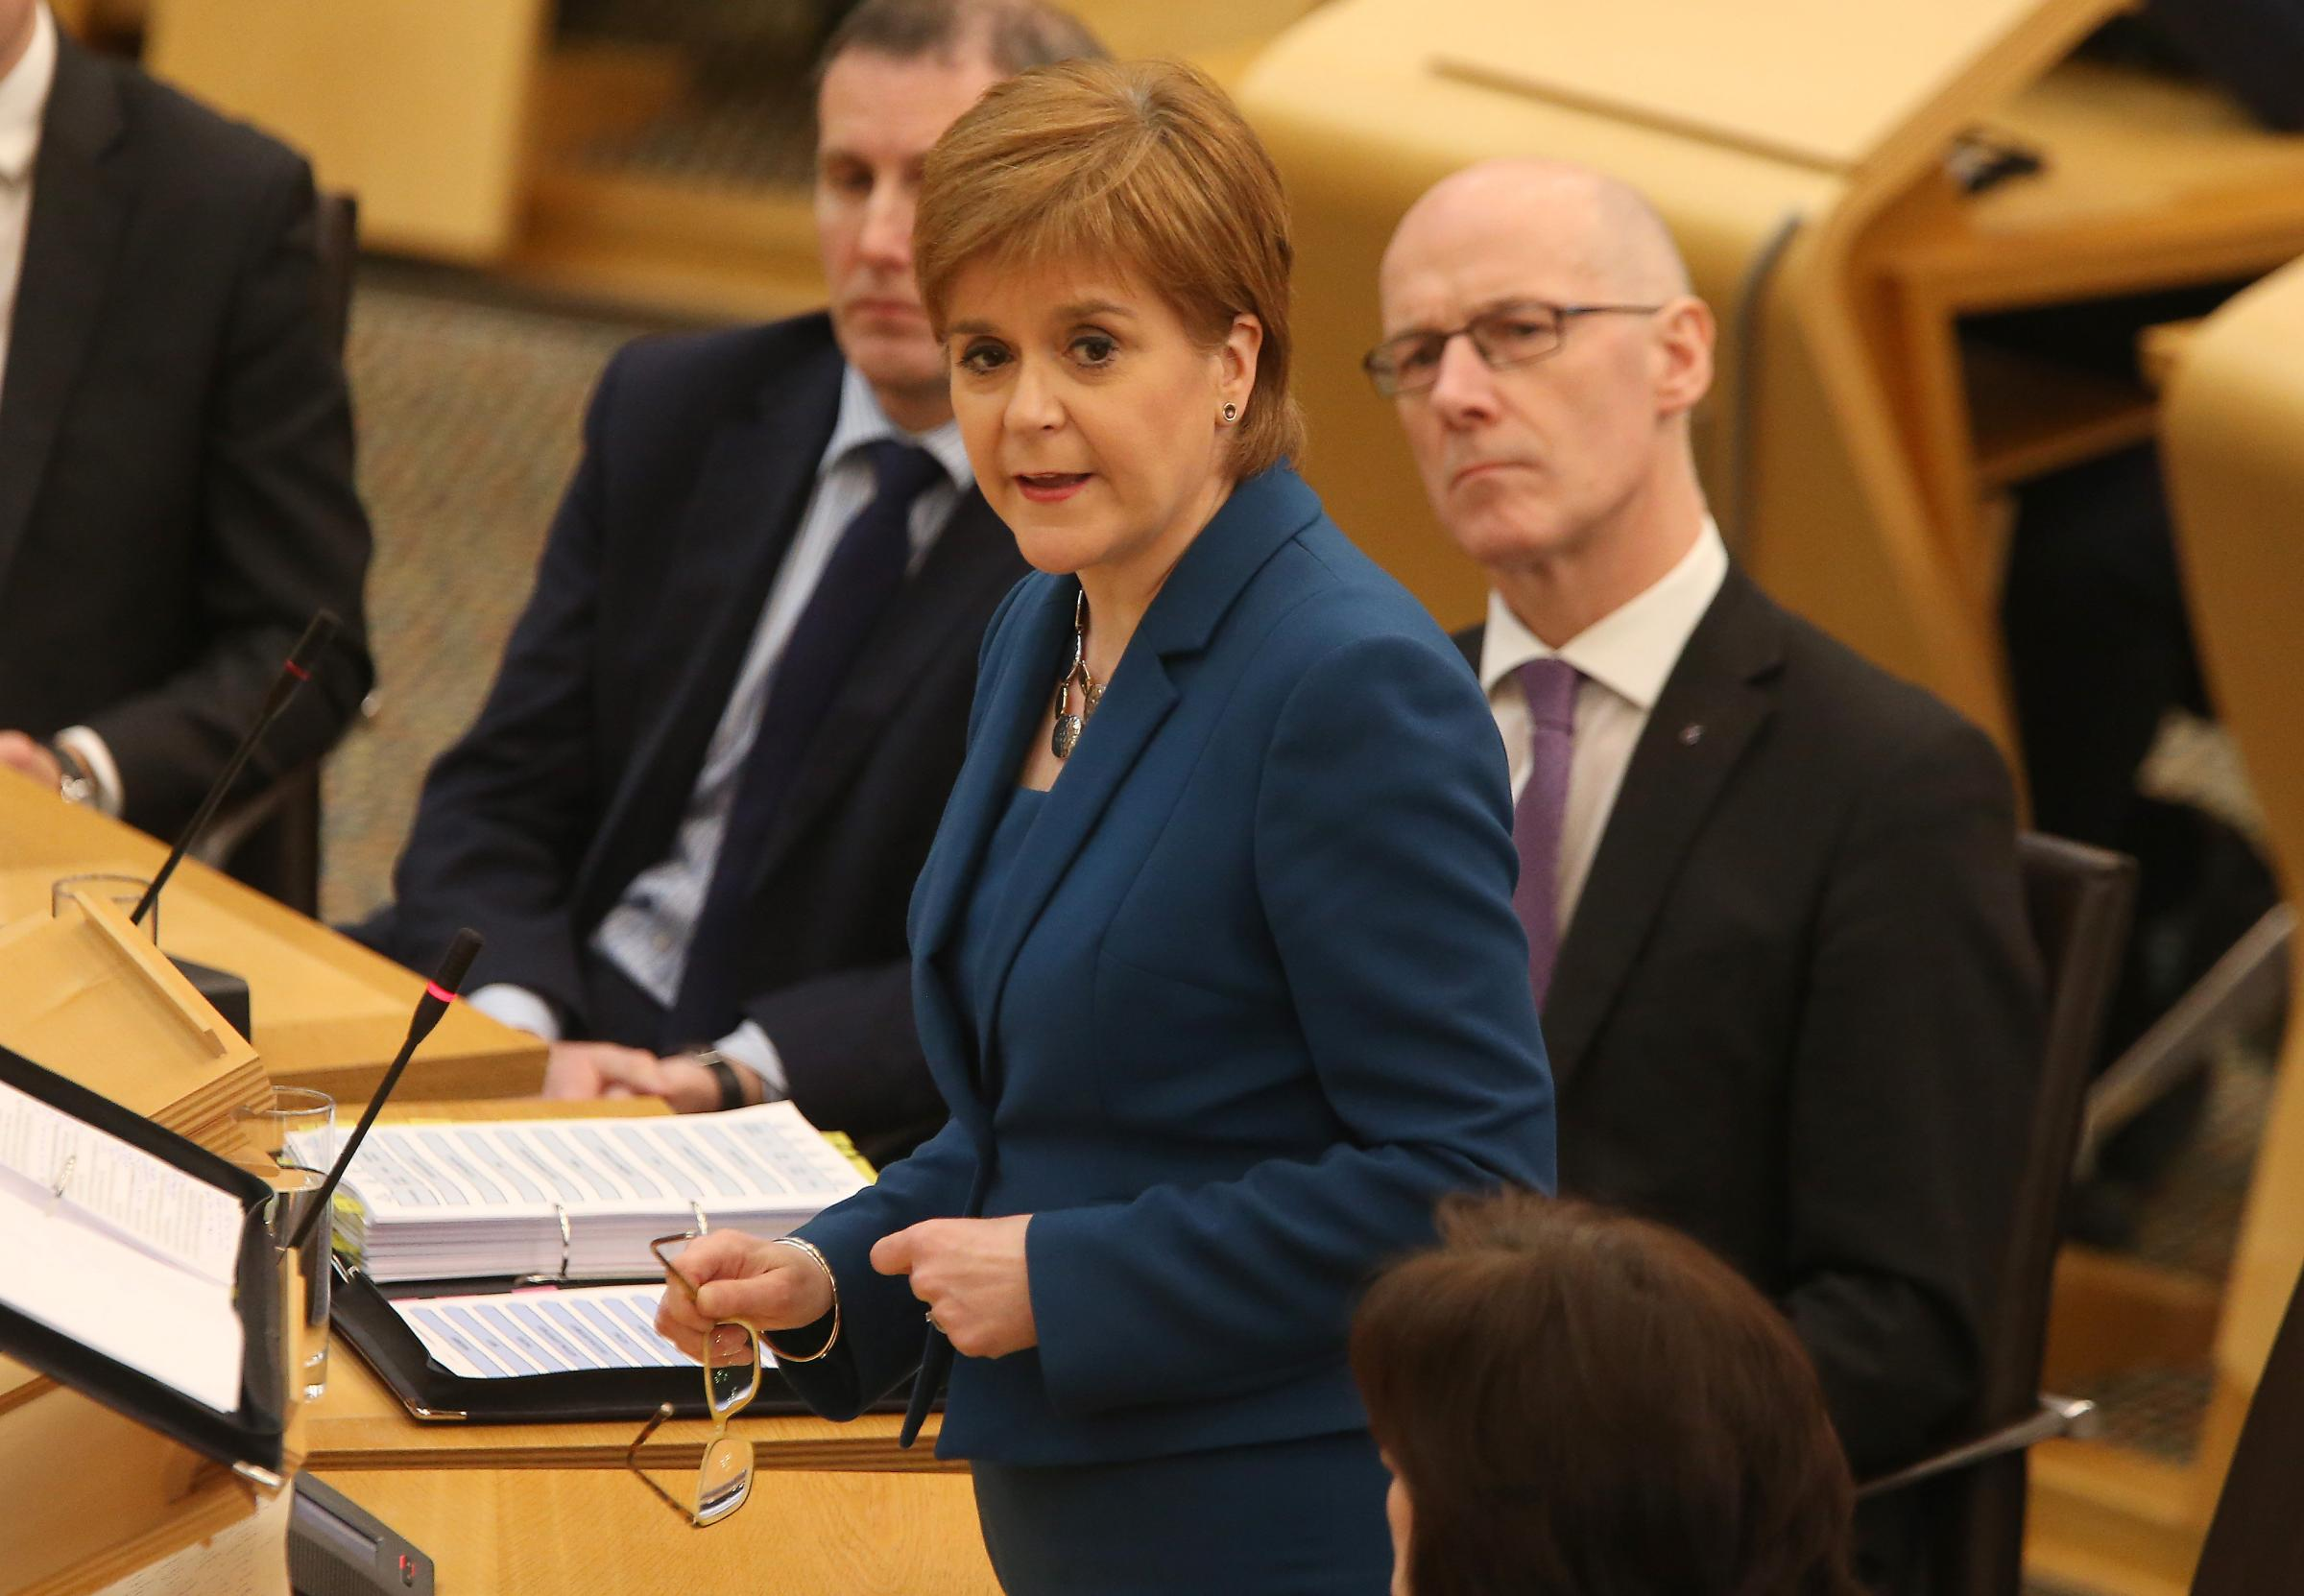 Nicola Sturgeon was speaking during First Minister's Questions. Photograph: Gordon Terris